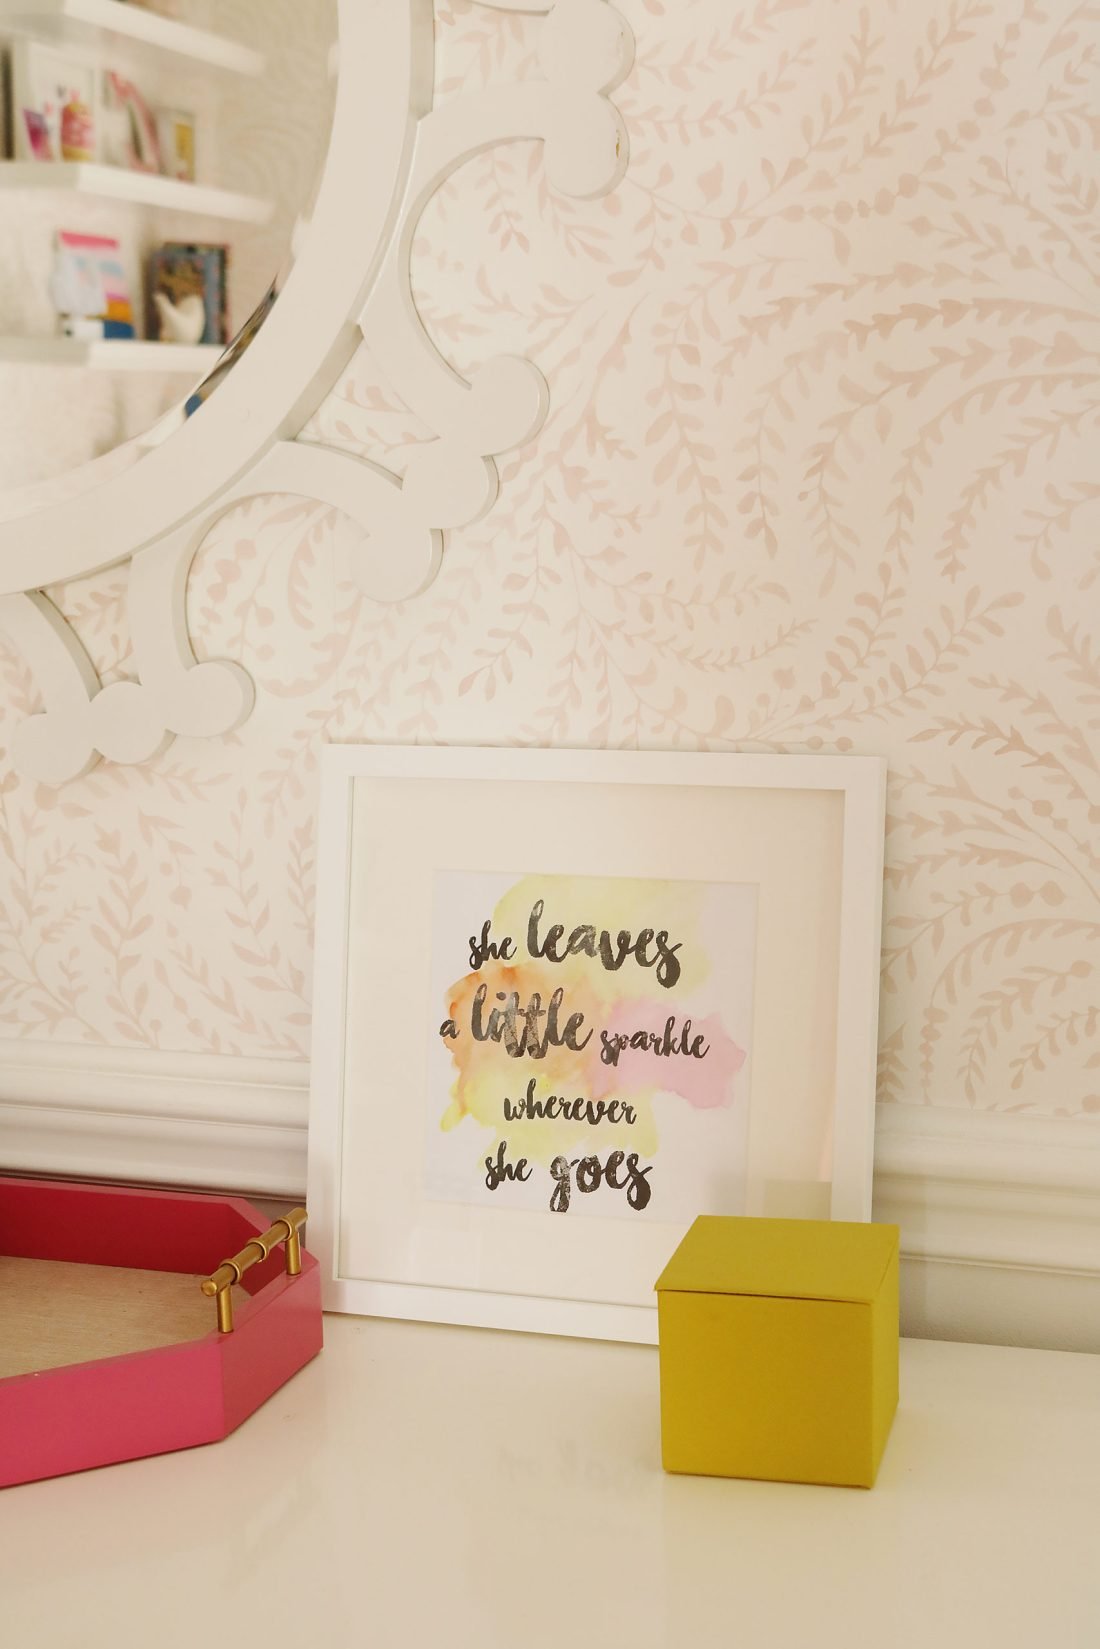 How to Make DIY Typography Art Prints in Microsoft Word in Less than 20 minutes!  Add watercolor to add style and color.  Get the step-by-step process || Darling Darleen Top Lifestyle Blogger #darlingdarleen #diytypography #diyartprint